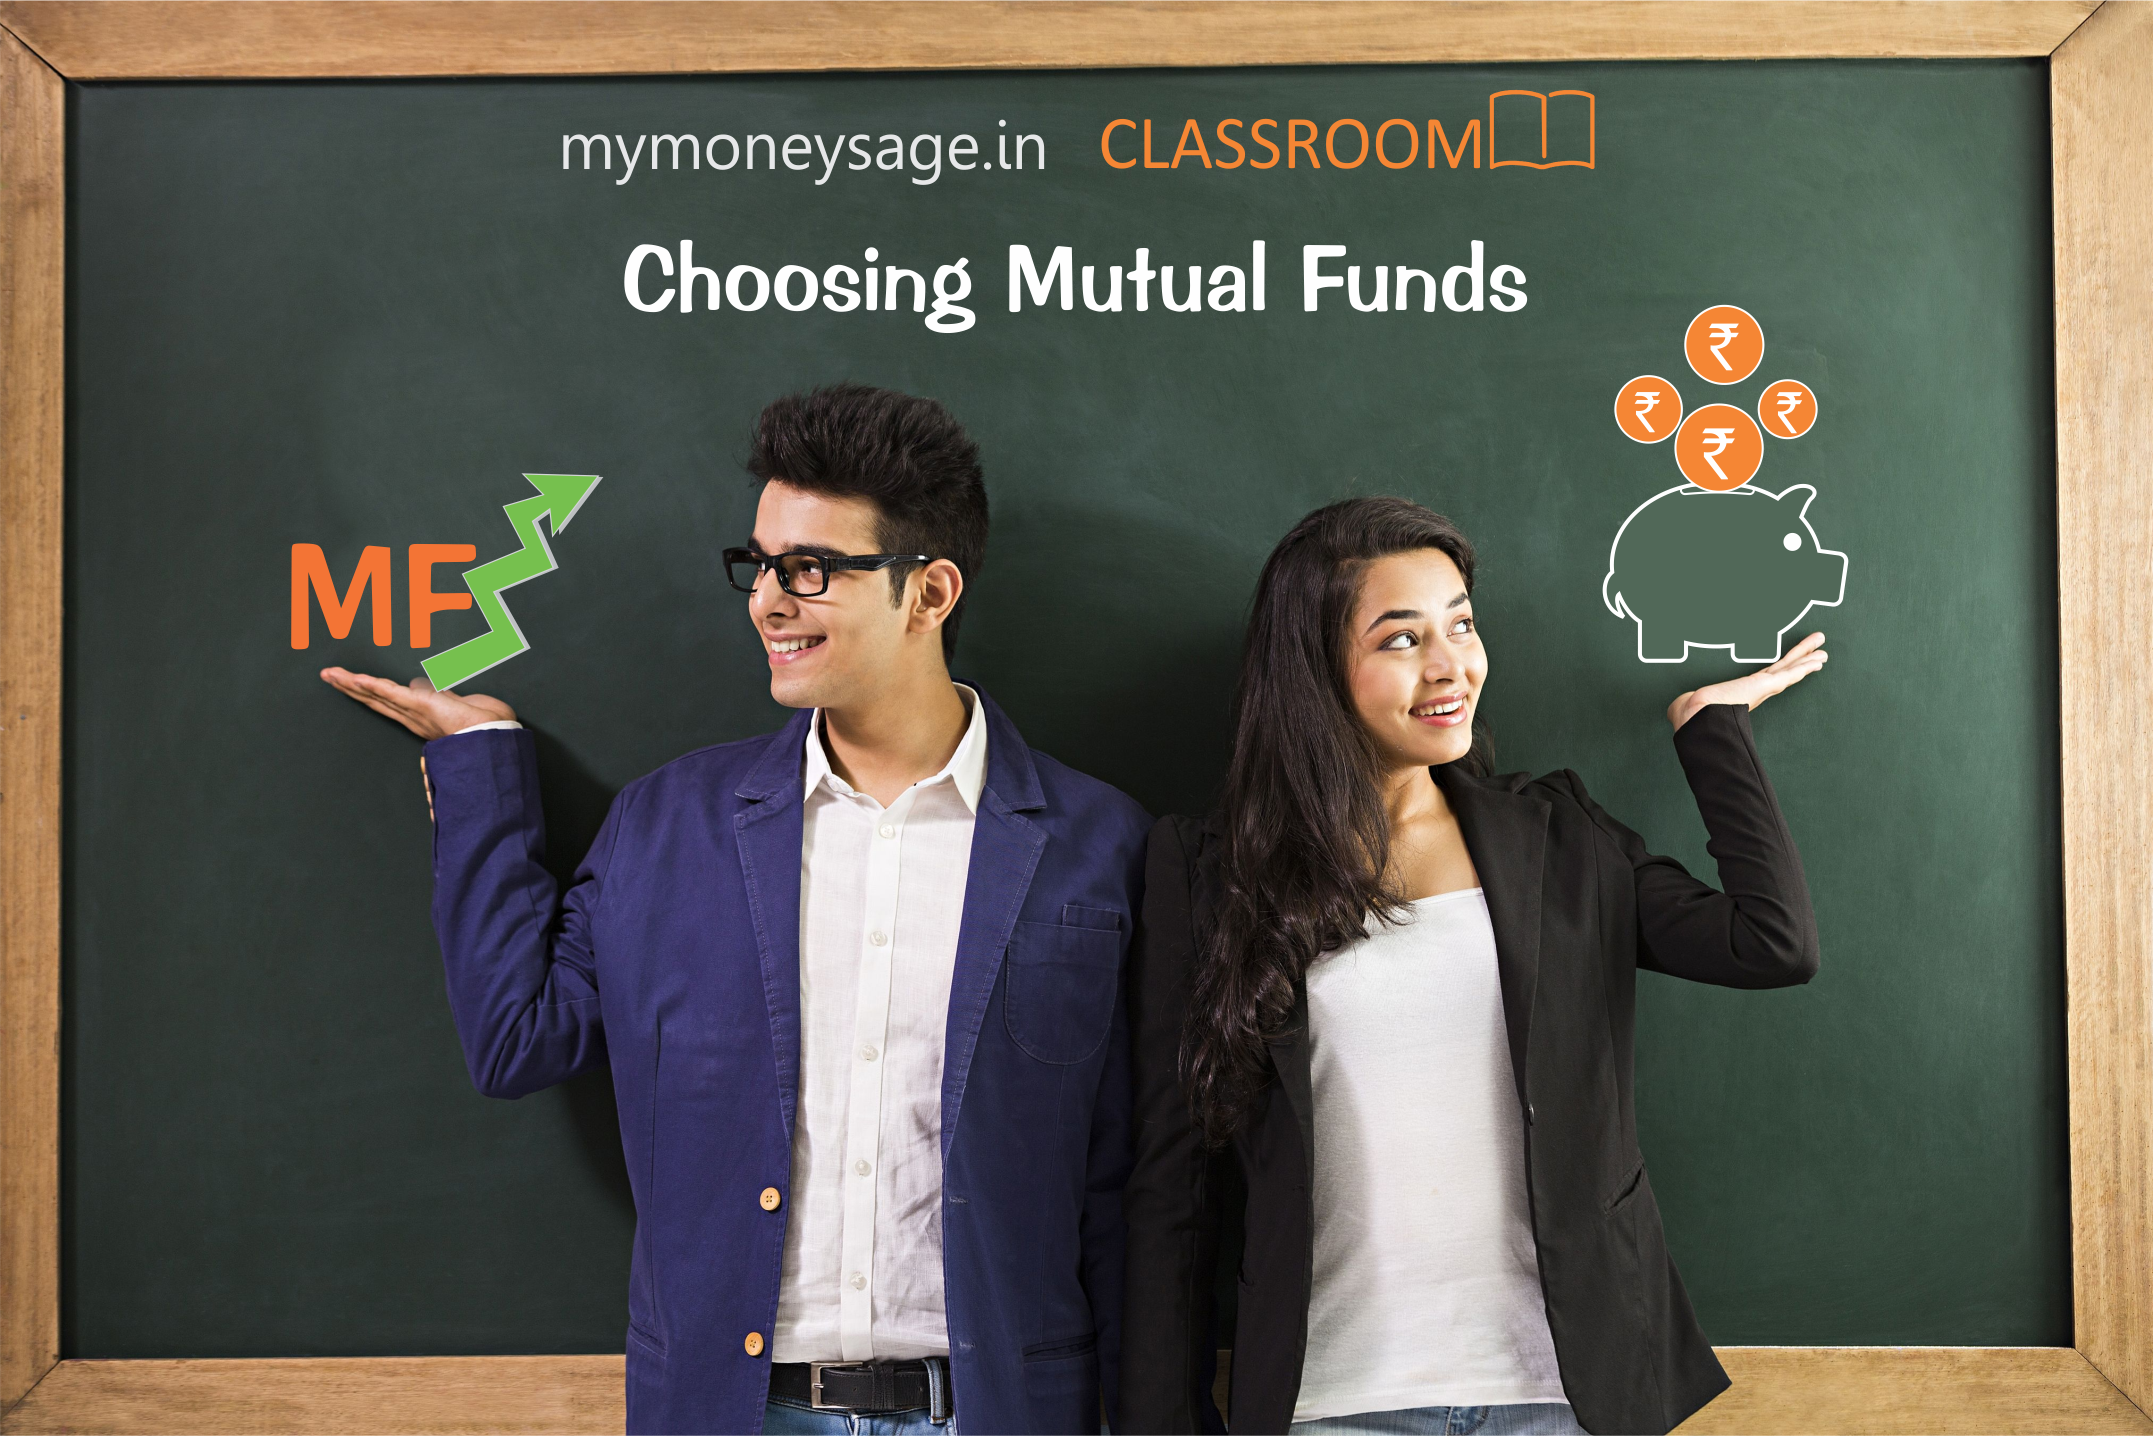 Factors affecting selection of Mutual Fund